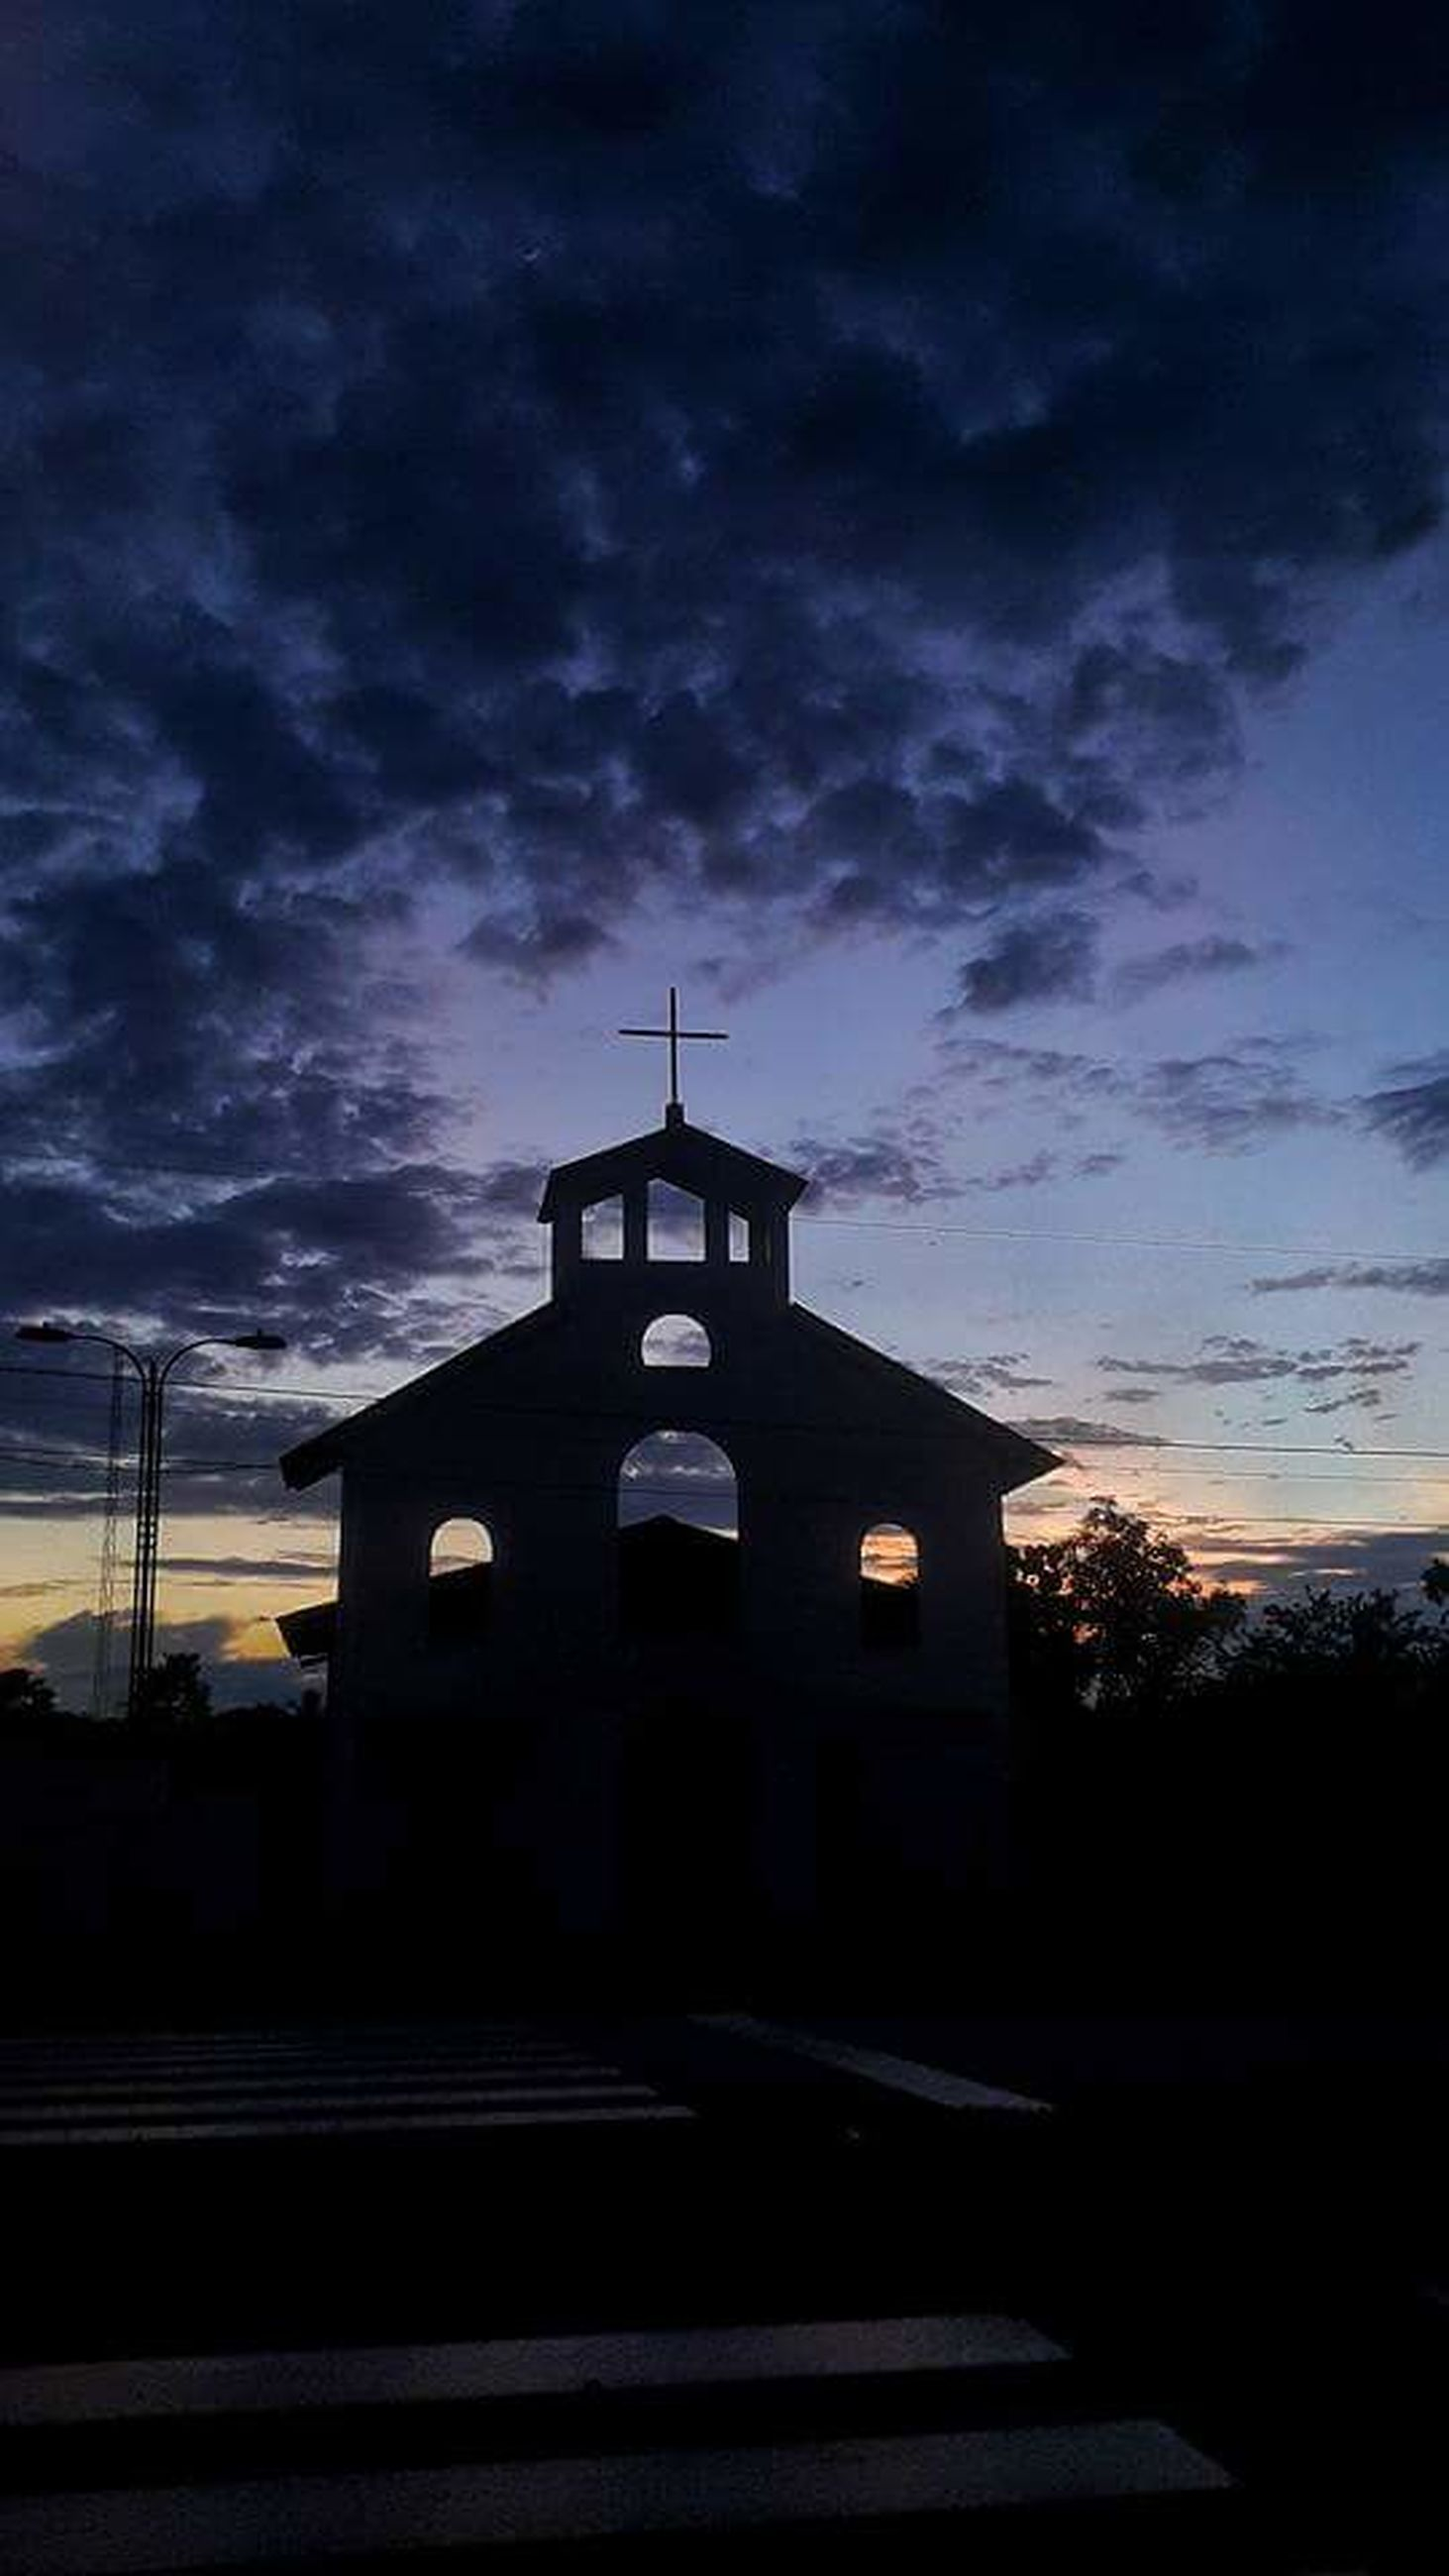 architecture, built structure, building exterior, silhouette, sky, cloud - sky, dark, outdoors, cloudy, facade, cloud, place of worship, no people